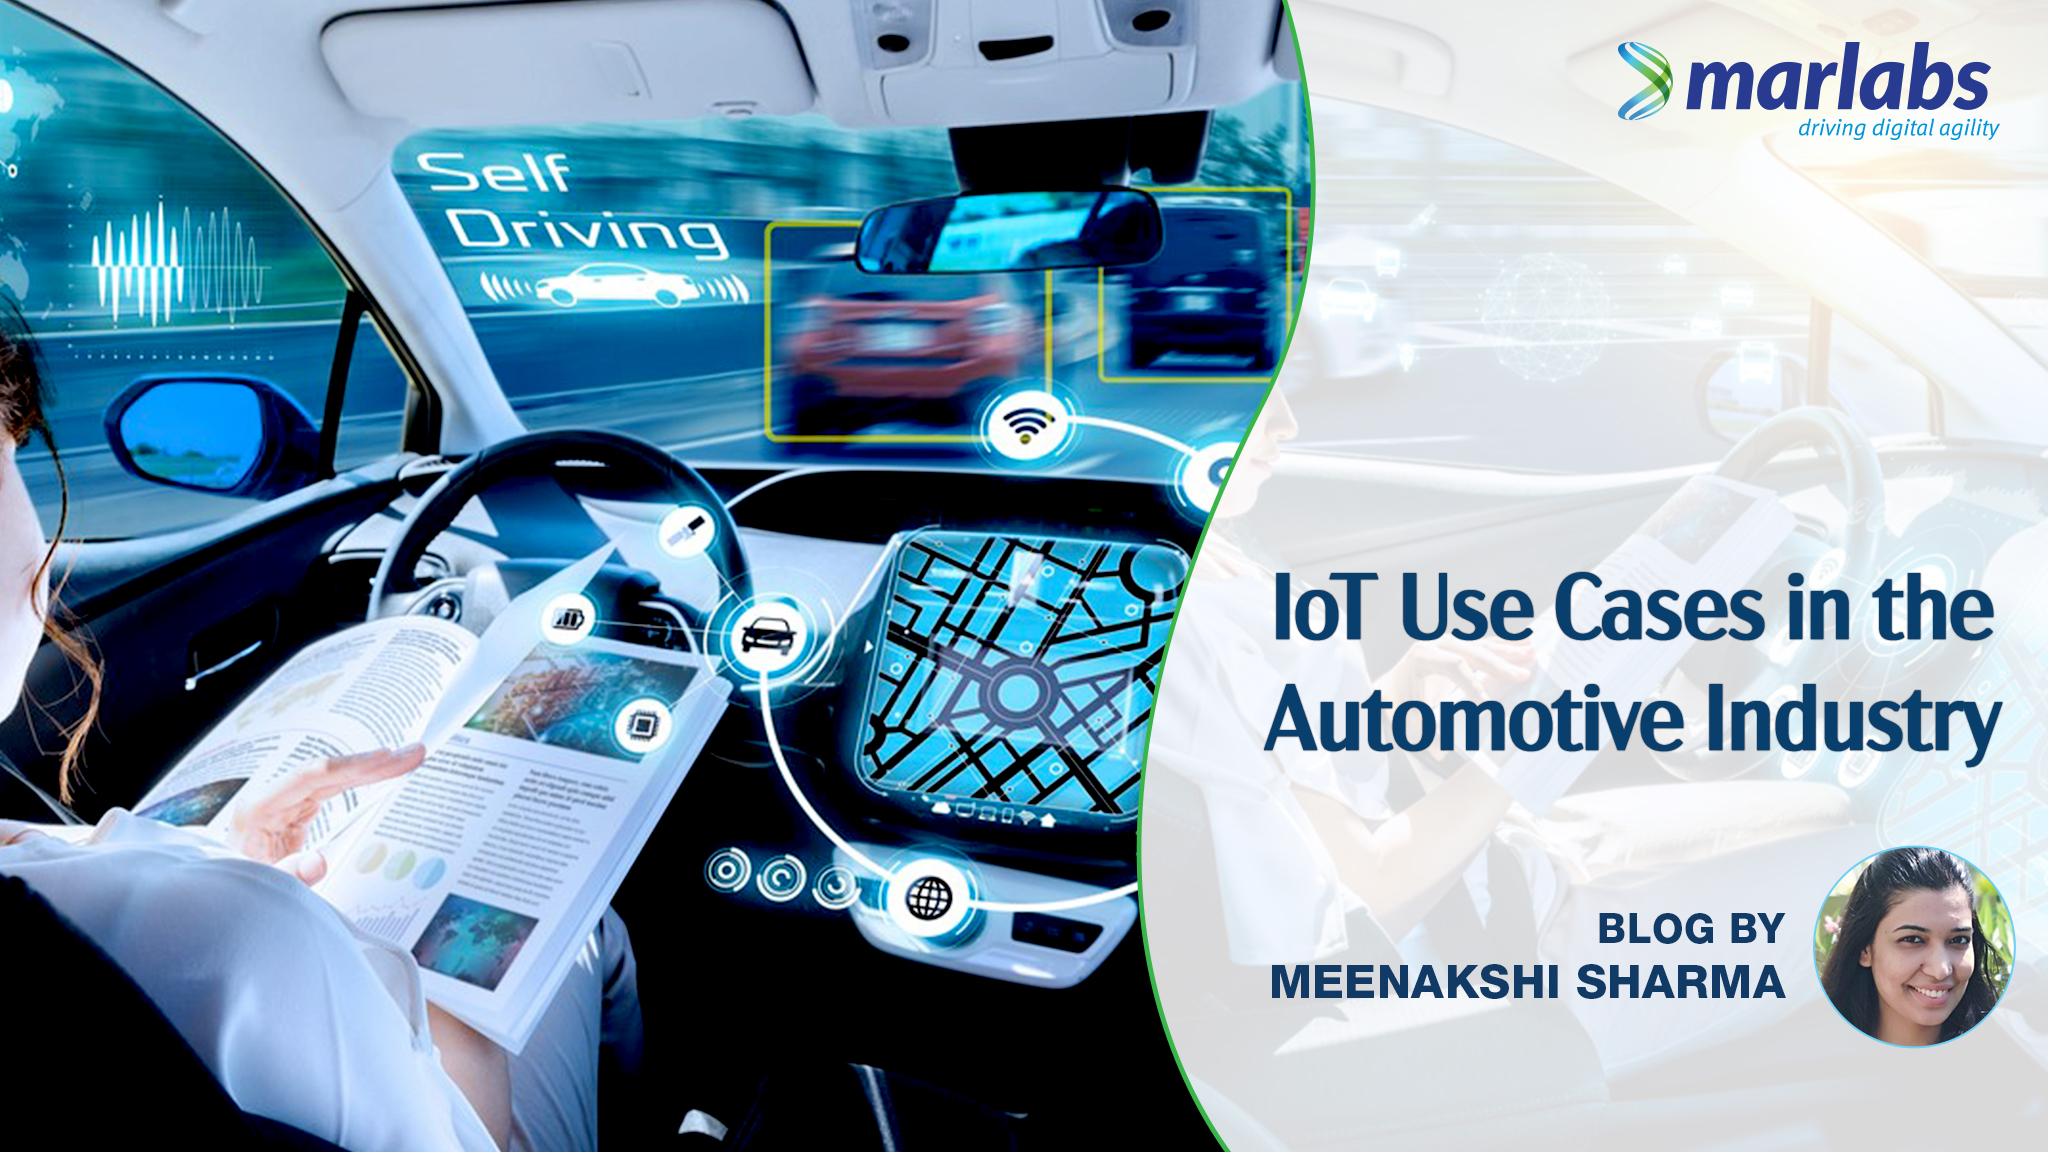 IoT Use Cases in the Automotive Industry